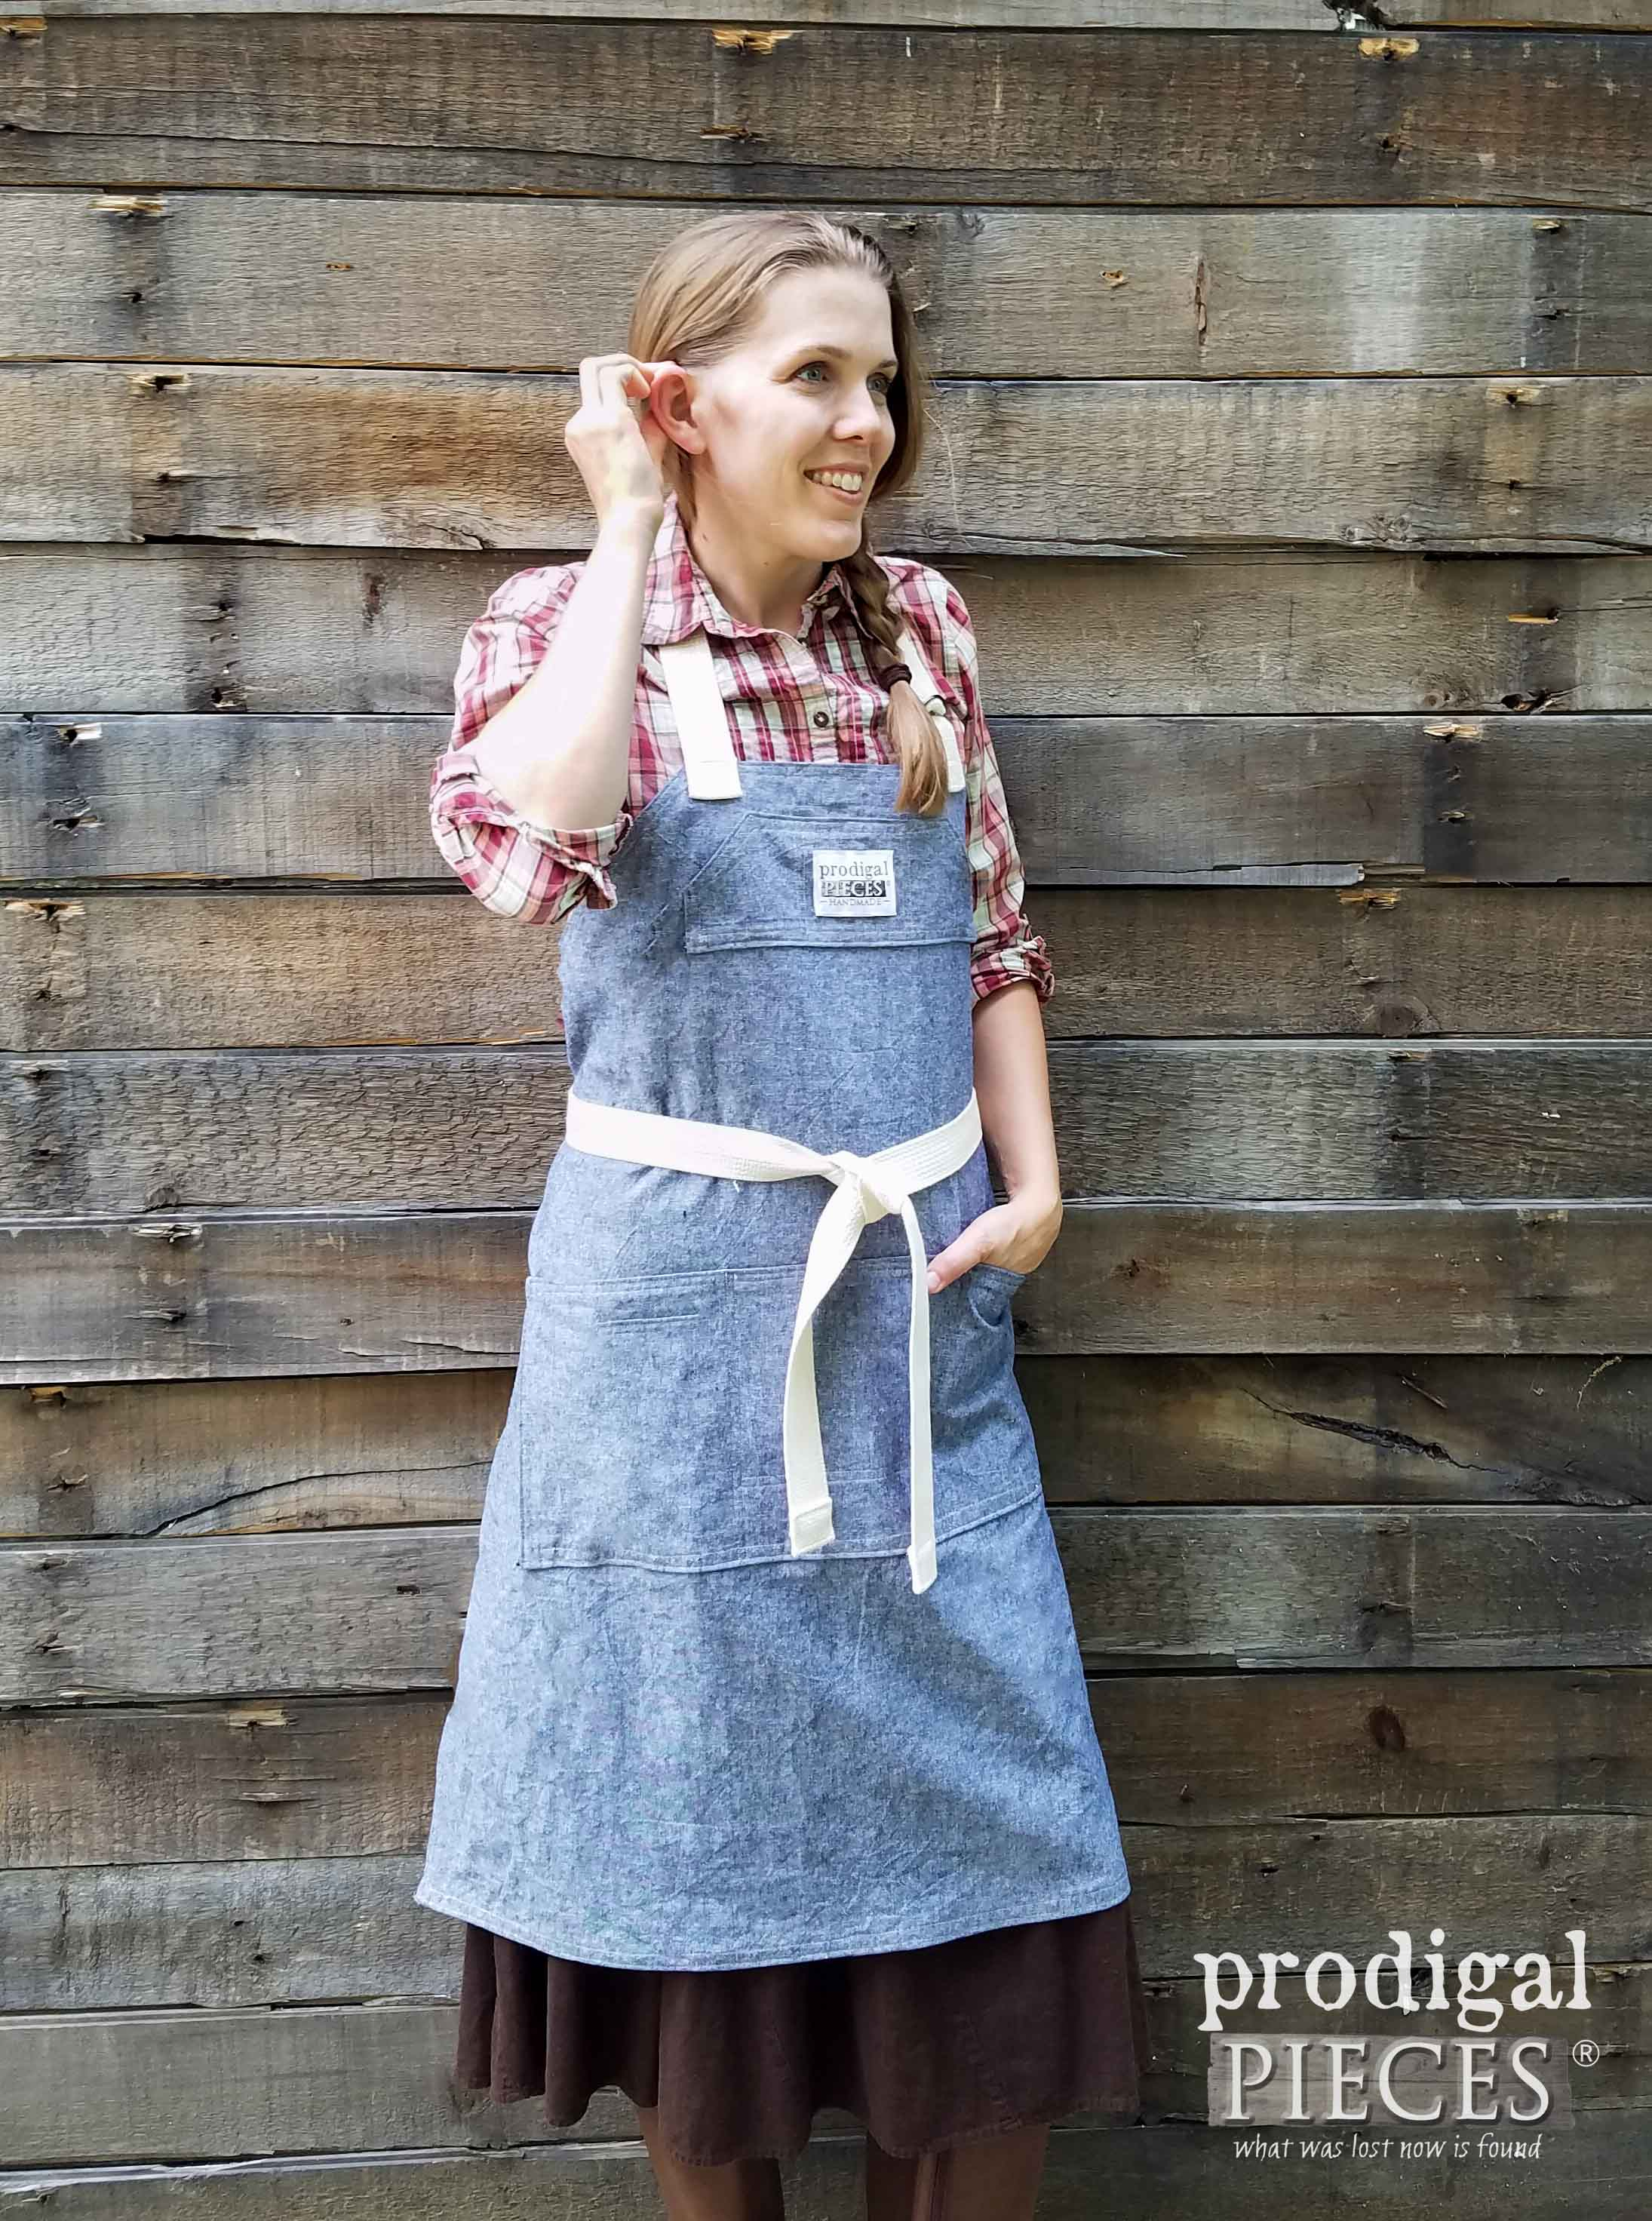 Linen Demi-Chef Apron for Kitchen, Woodworking, Painting, Gardening and more by Prodigal Pieces | prodigalpieces.com